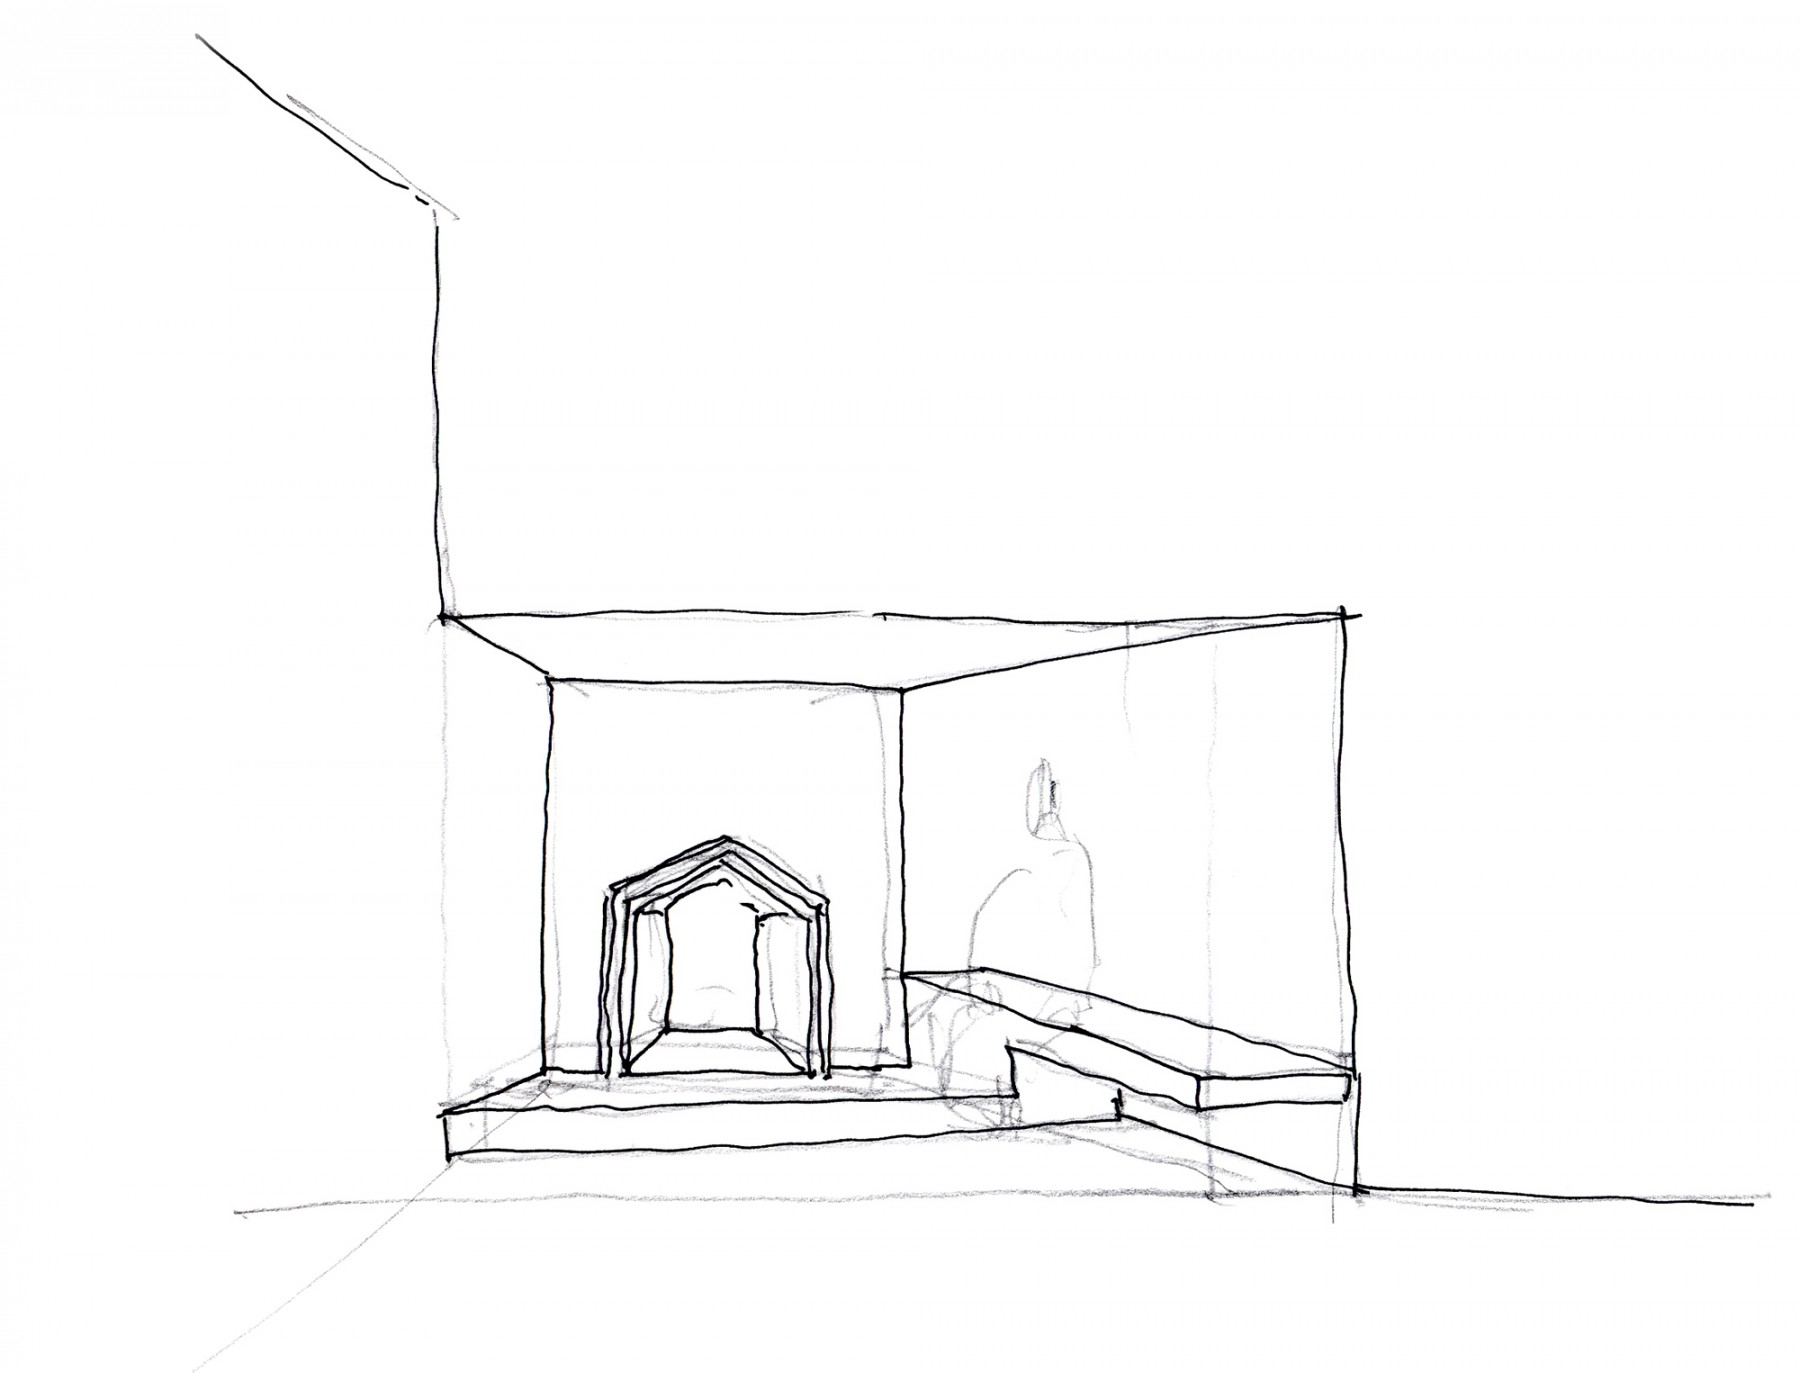 Astley-Castle-competition-accomodation-Nuneaton-Warwickshire-Landmark-trust-English-Heritage-short-list-Jamie-Fobert-architects-sketch